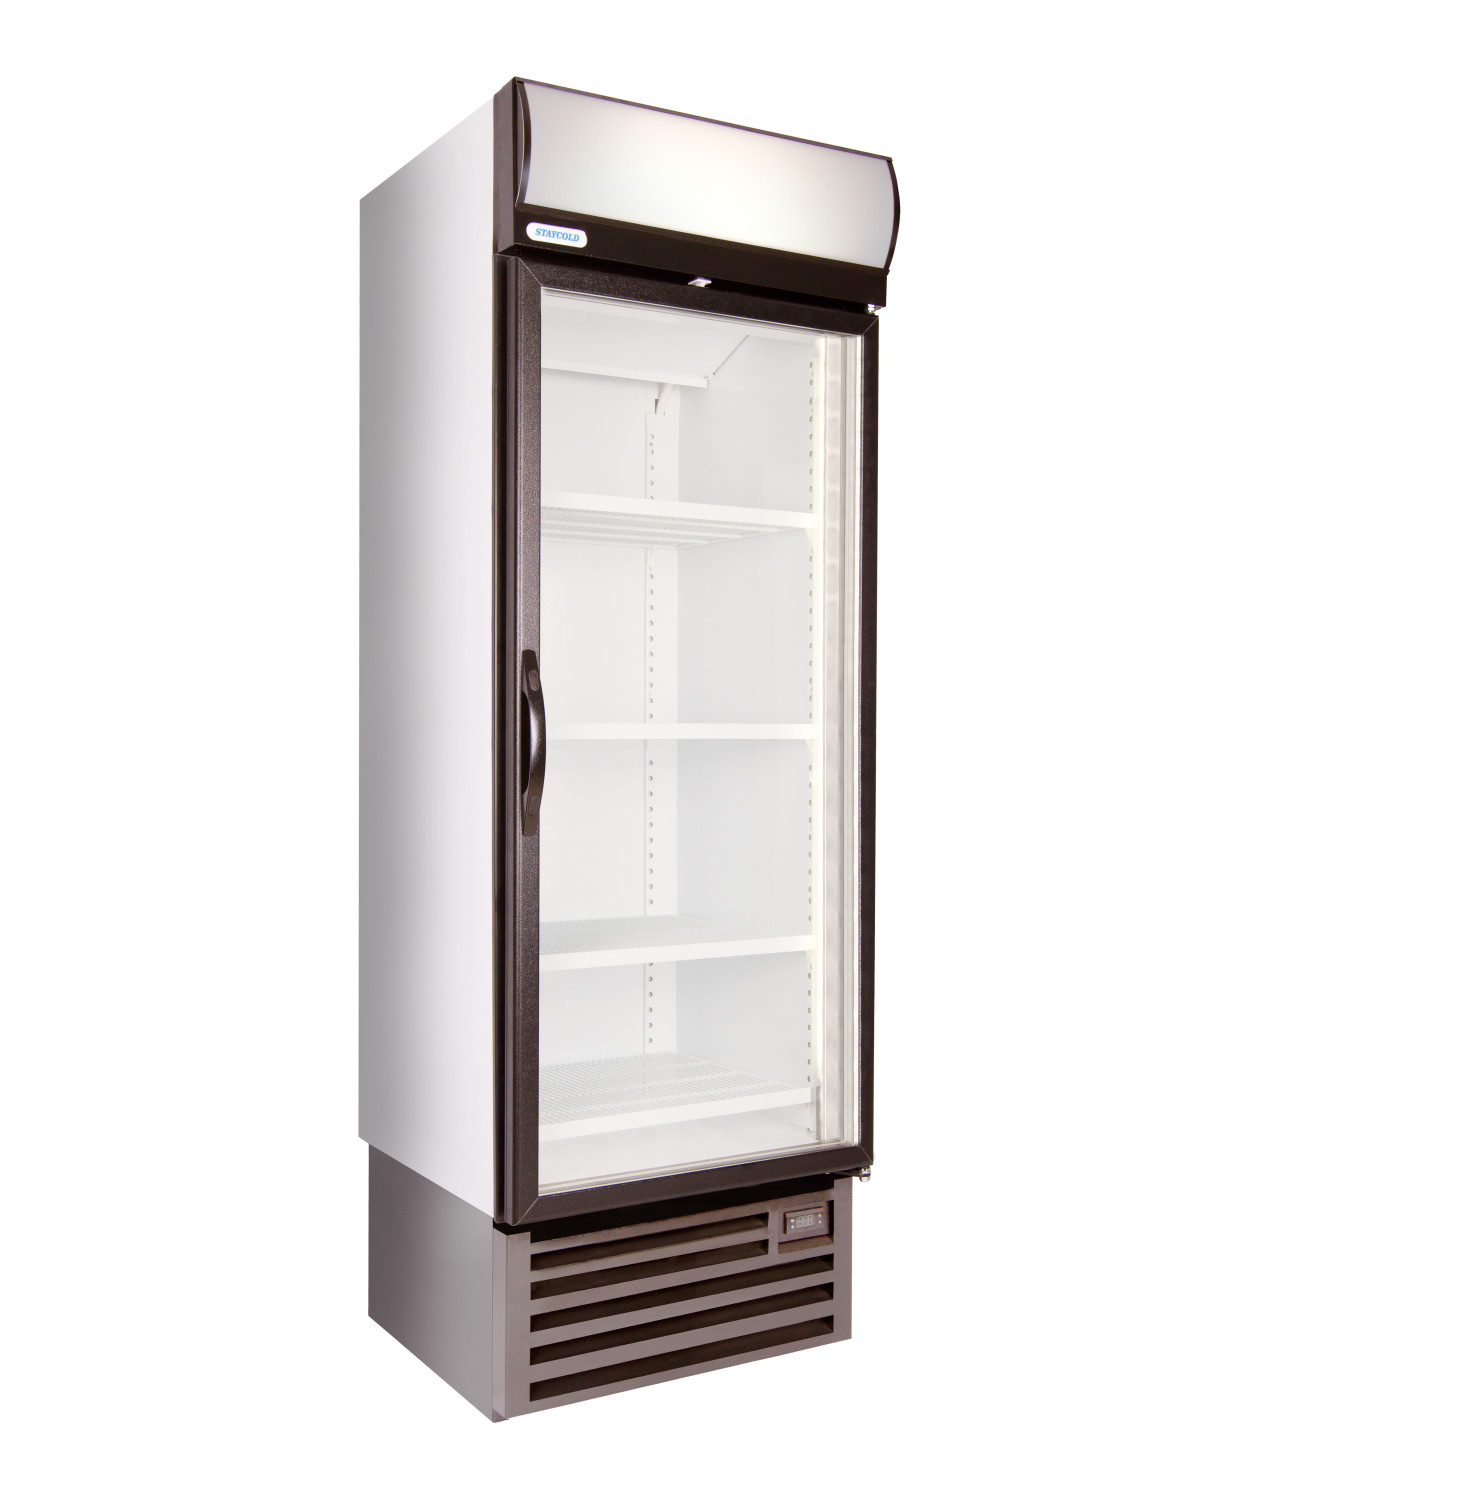 STAYCOLD UPRIGHT FREEZER  1 DOOR HINGED